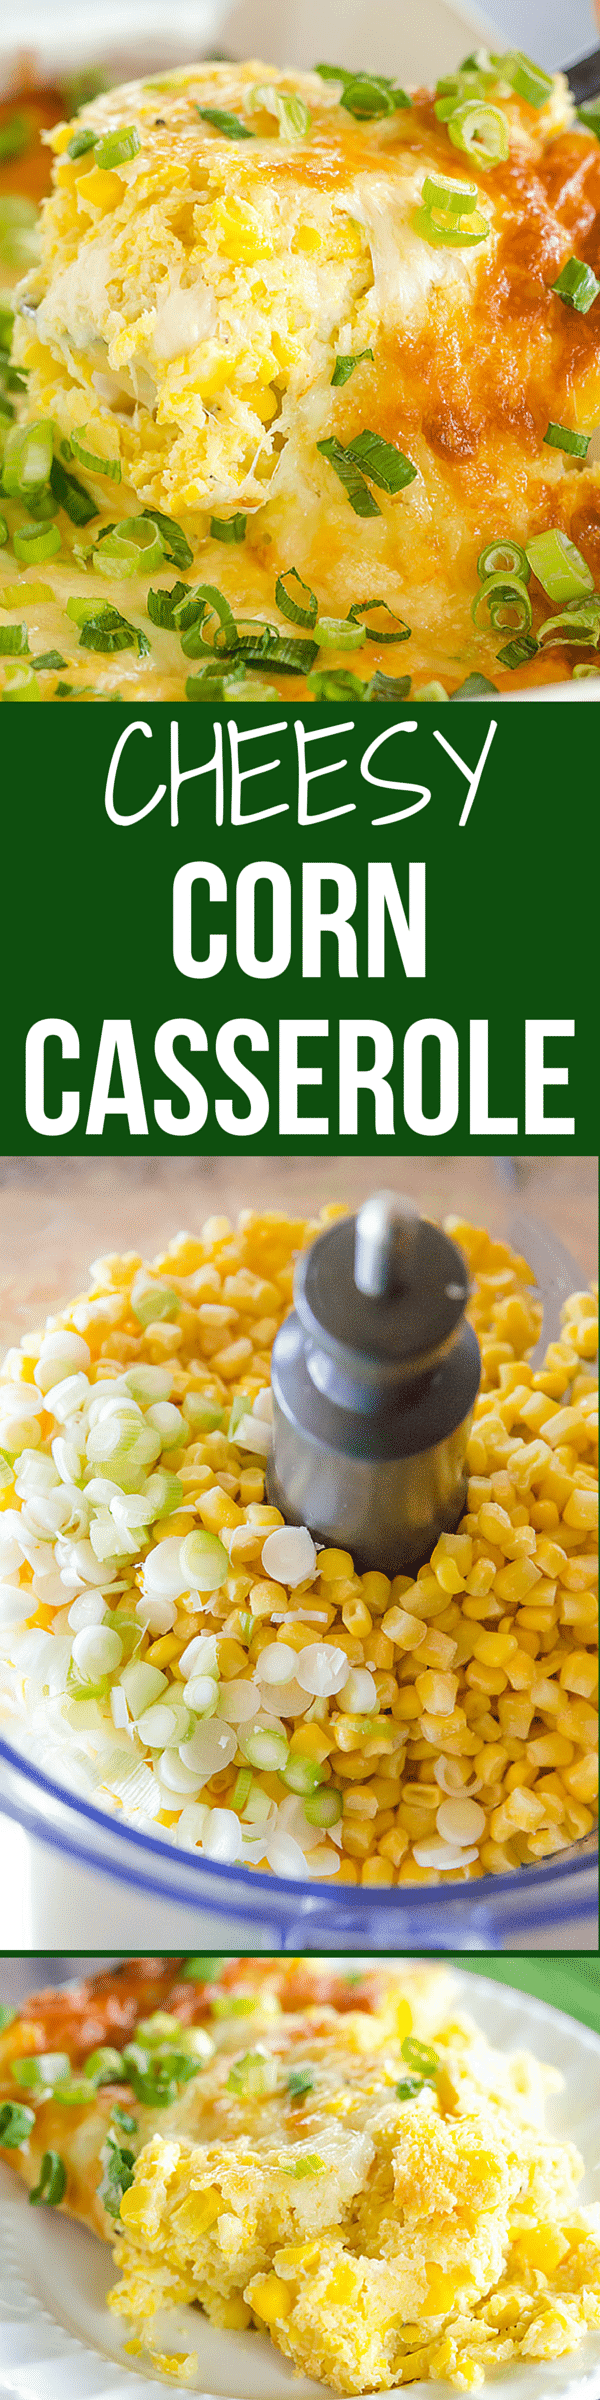 This is my best cheesy corn casserole yet - tons of corn flavor and super cheesy! Perfect for holiday side dishes or summer picnics.